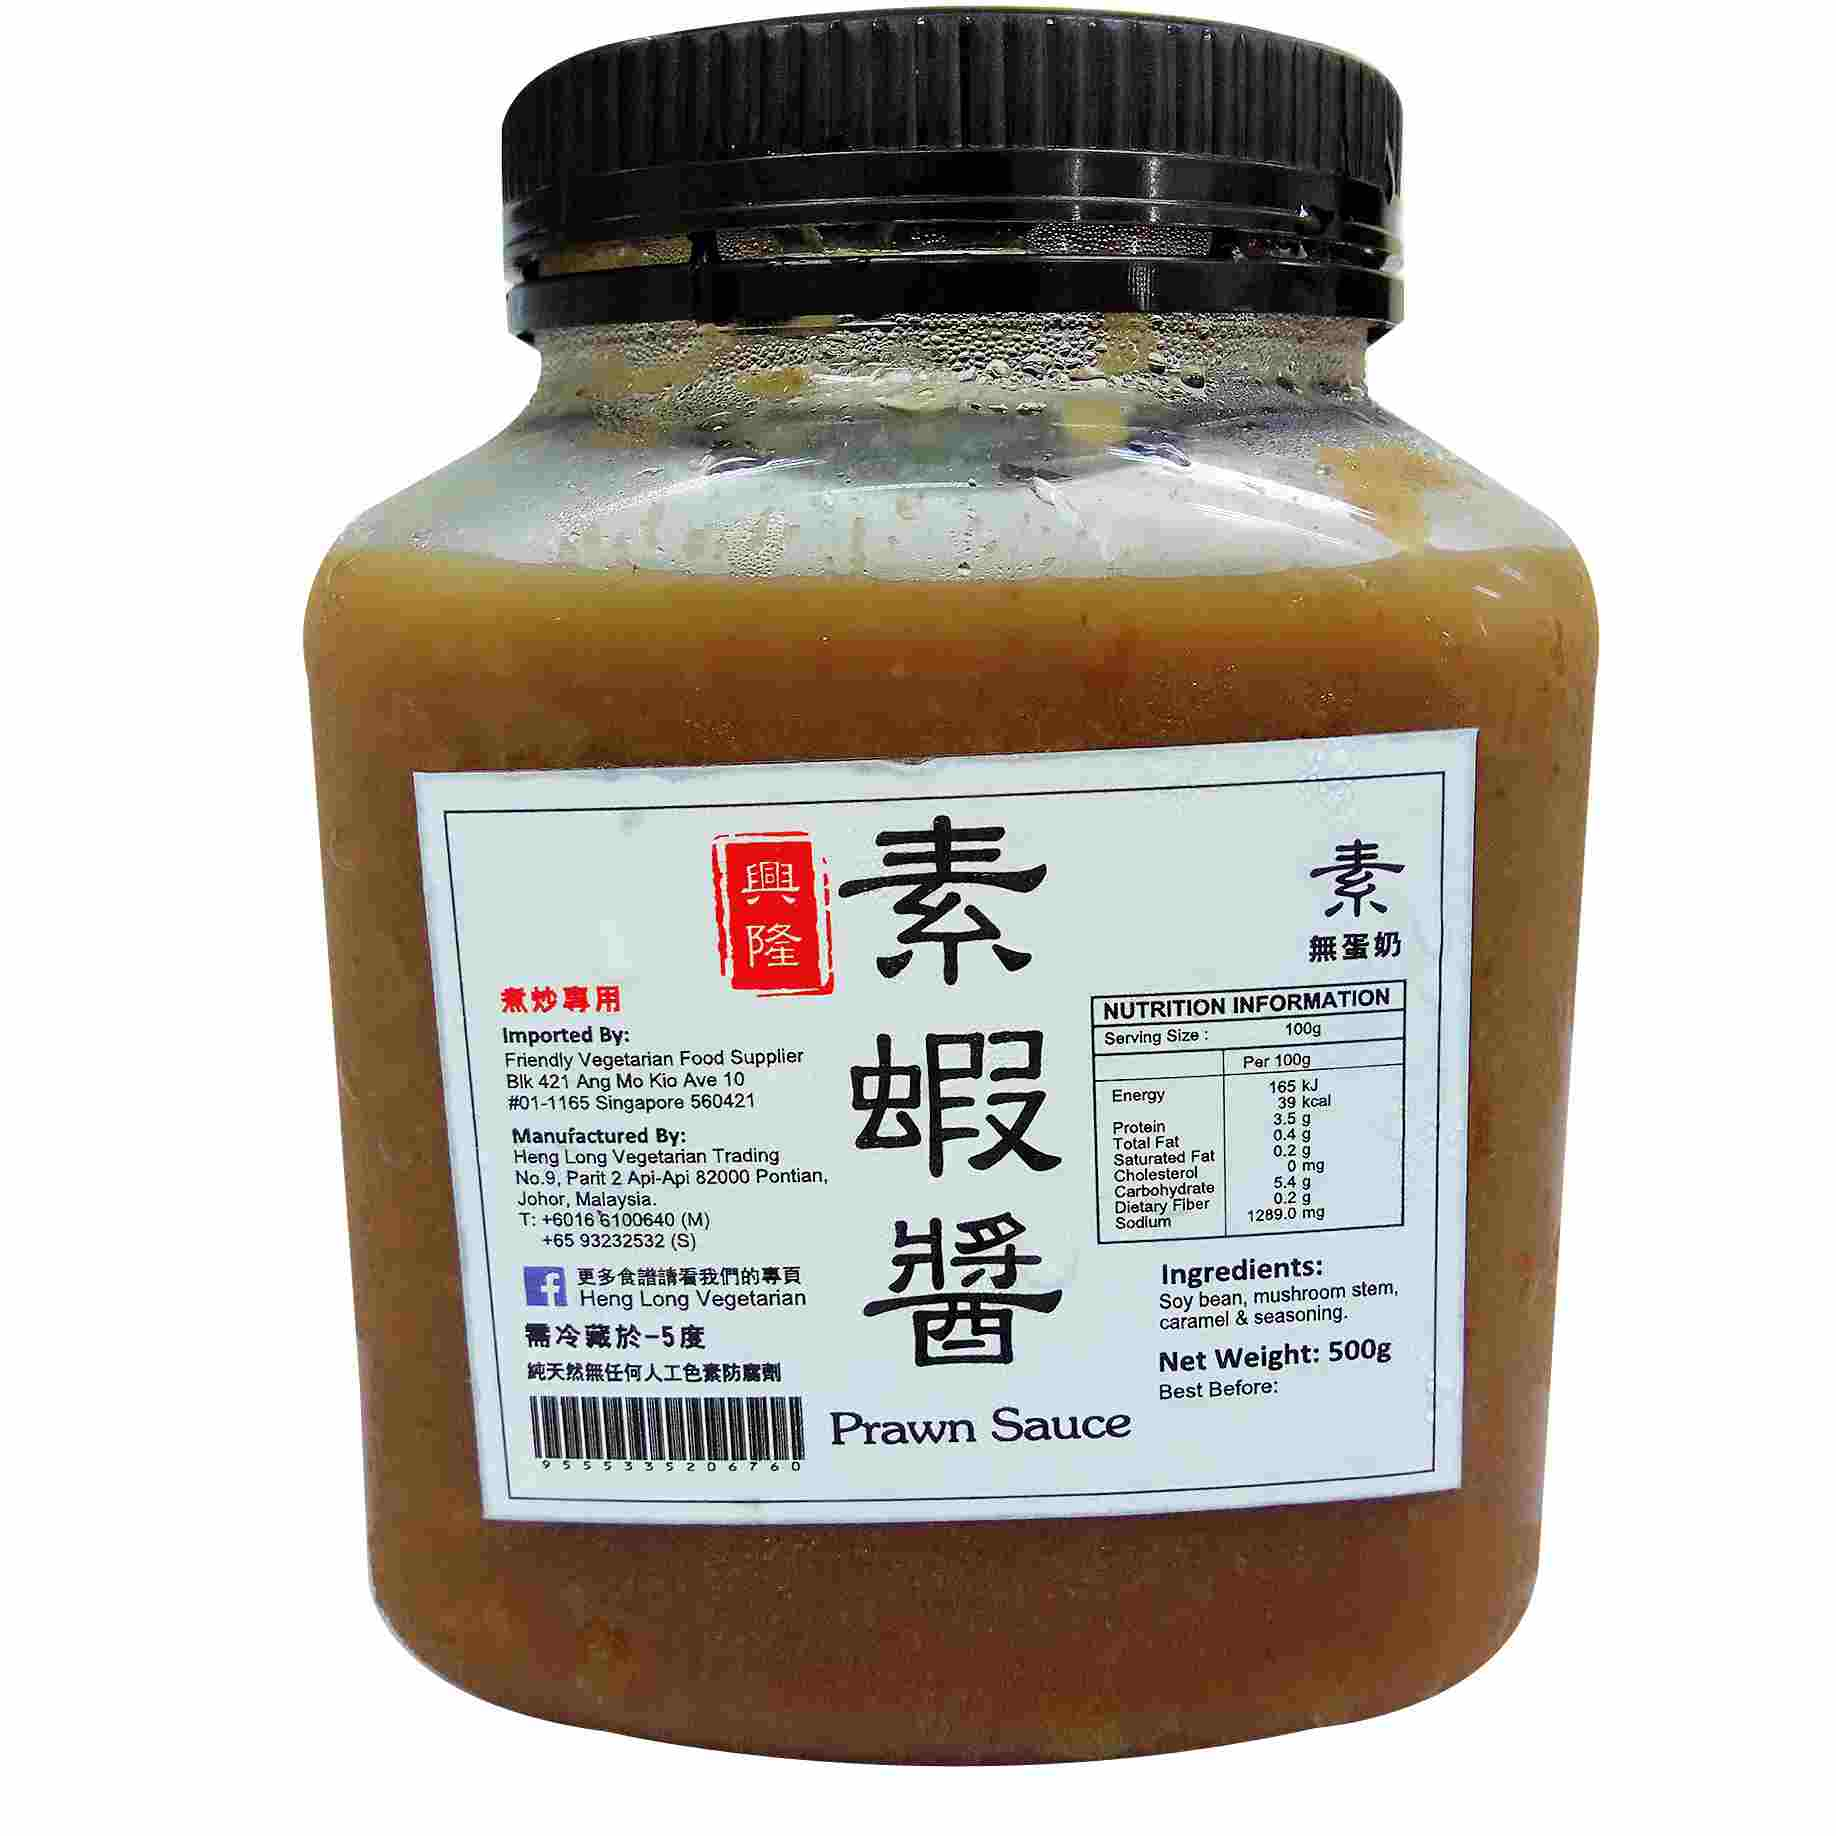 Image Heng Long Prawn Sauce 兴隆 - 素虾酱 500grams 槟城虾面酱